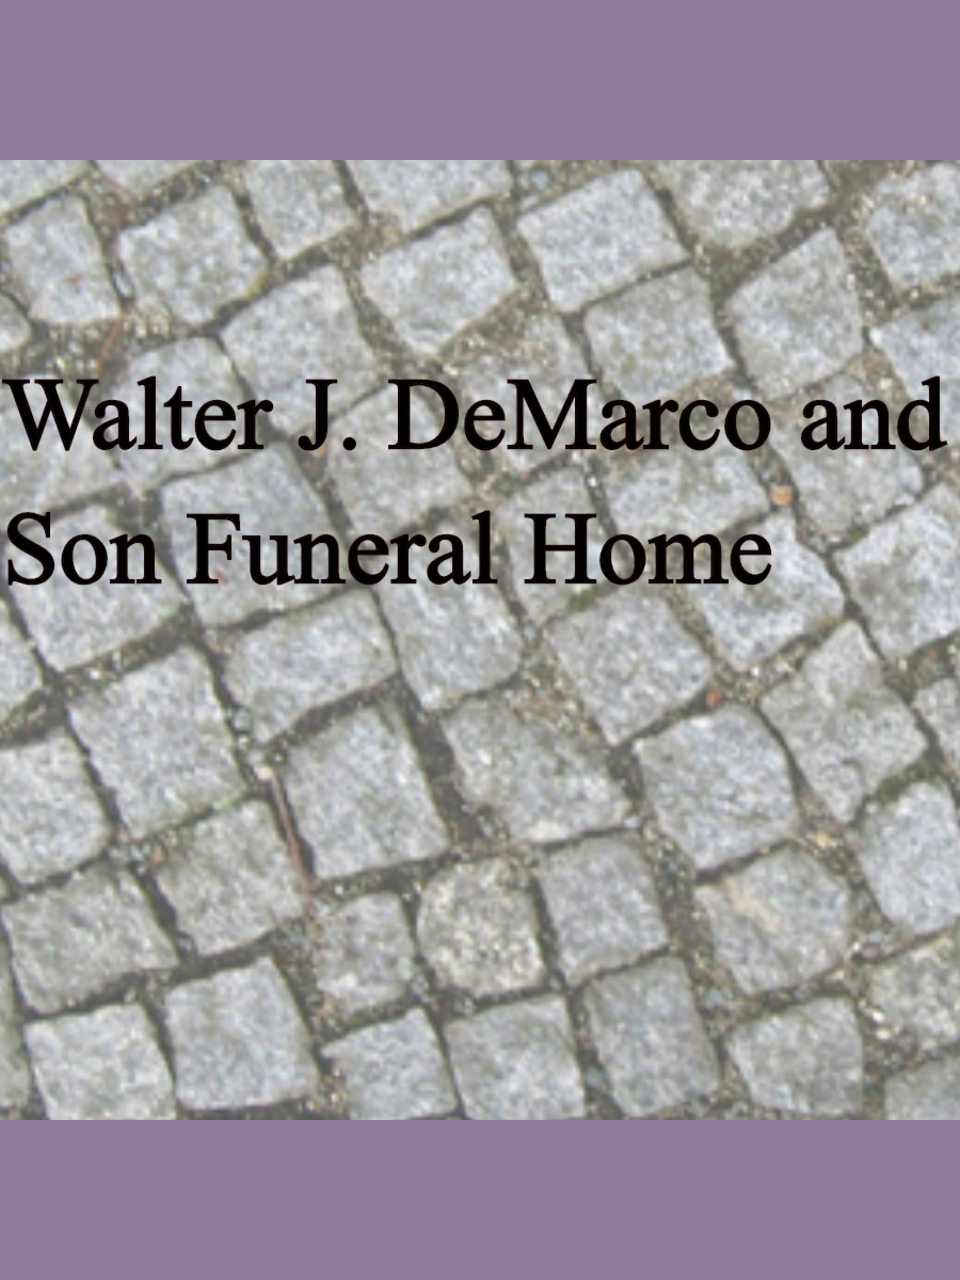 Walter J. DeMarco and Son Funeral Home